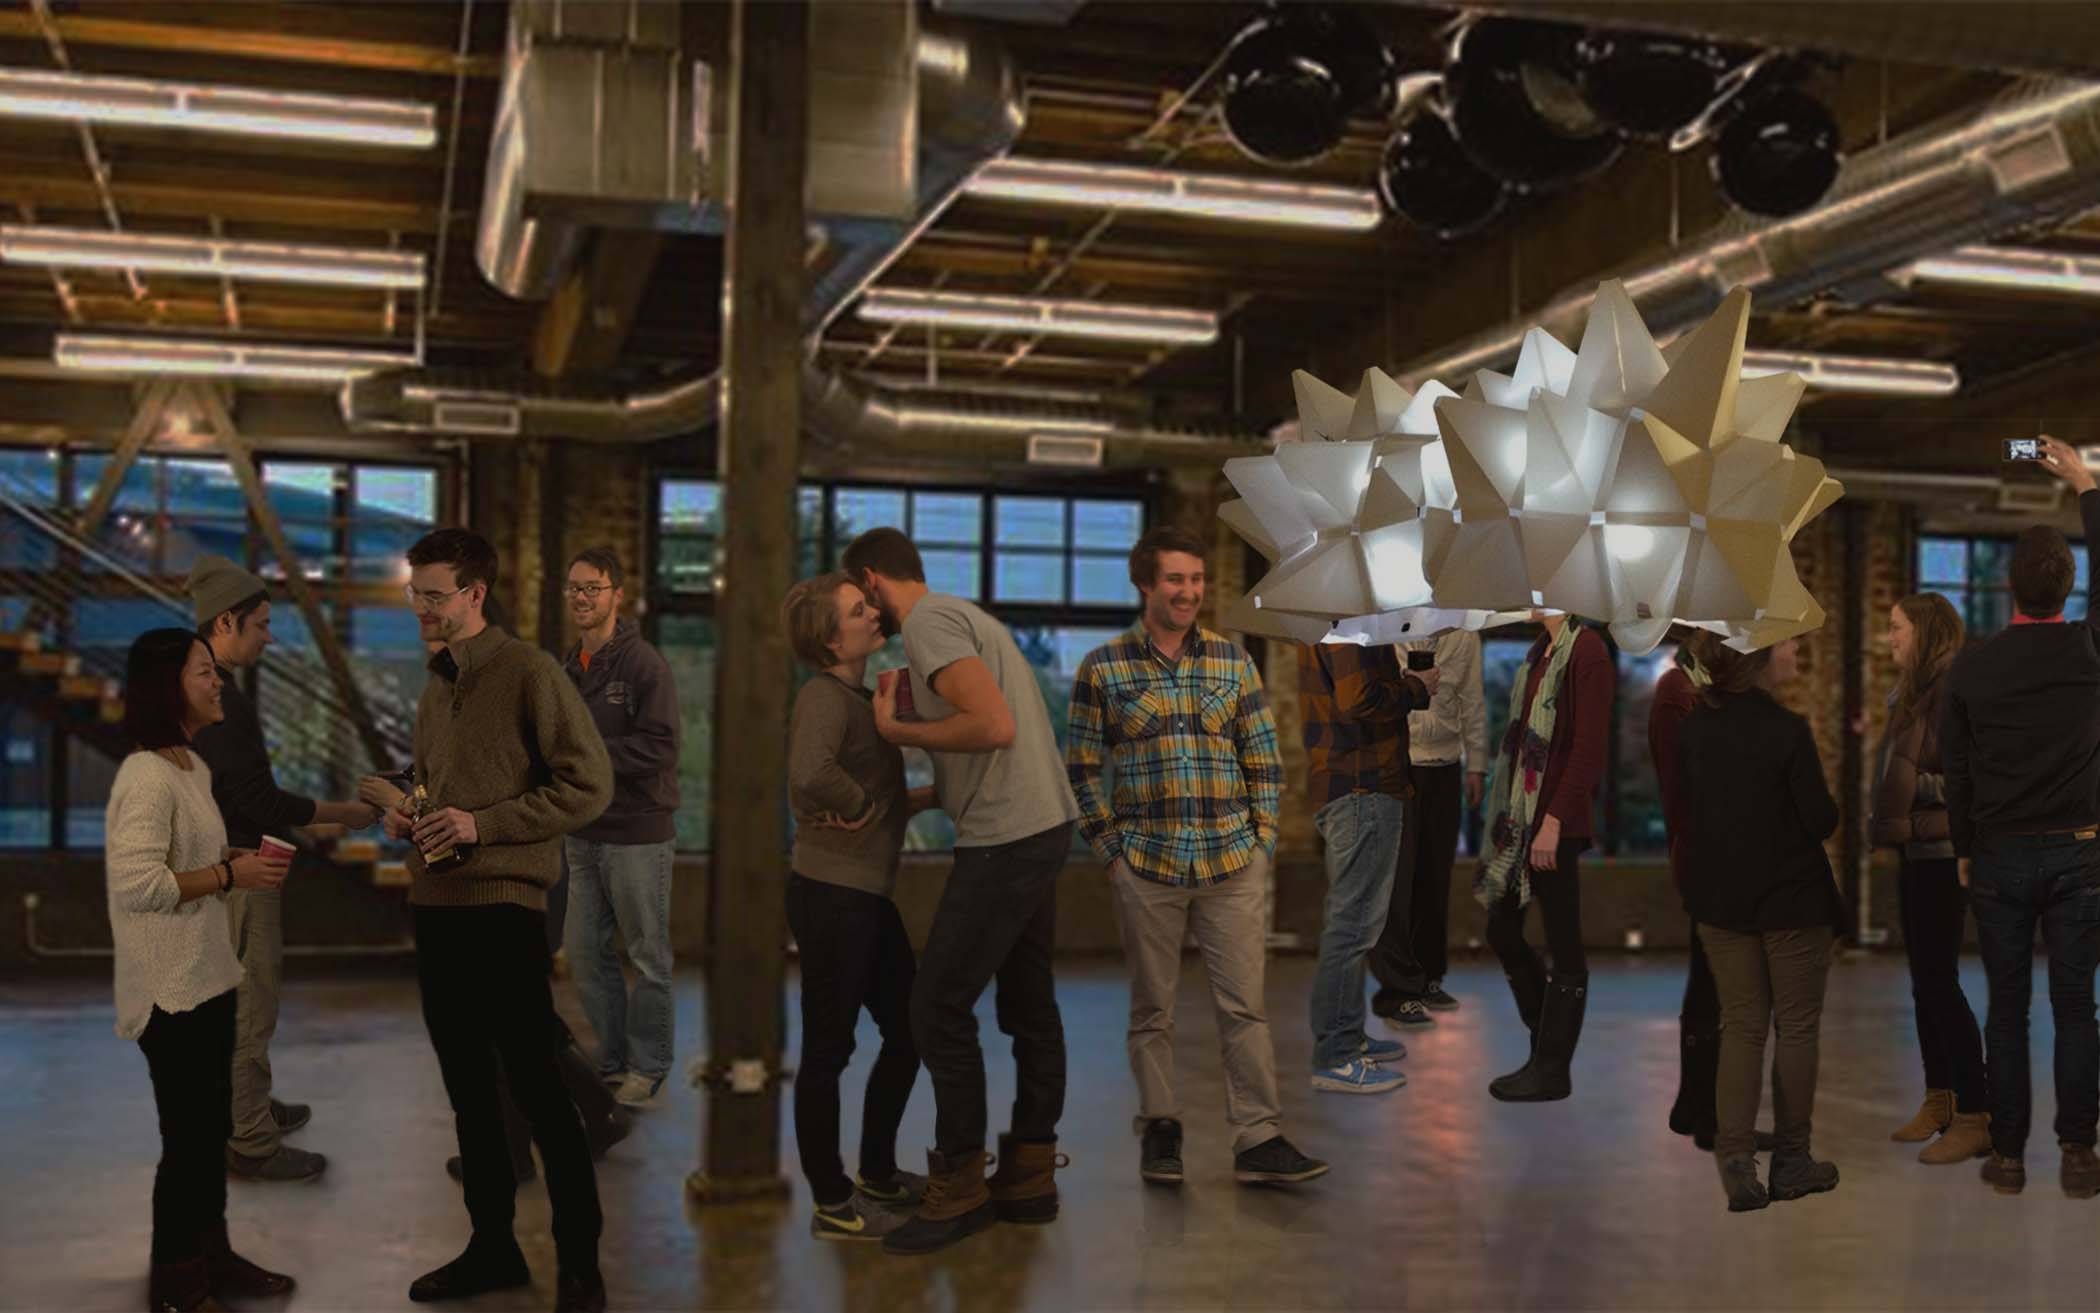 The Aurasphere (right) suspends above a crowd at the Leftbank Annex in Portland, Oregon.